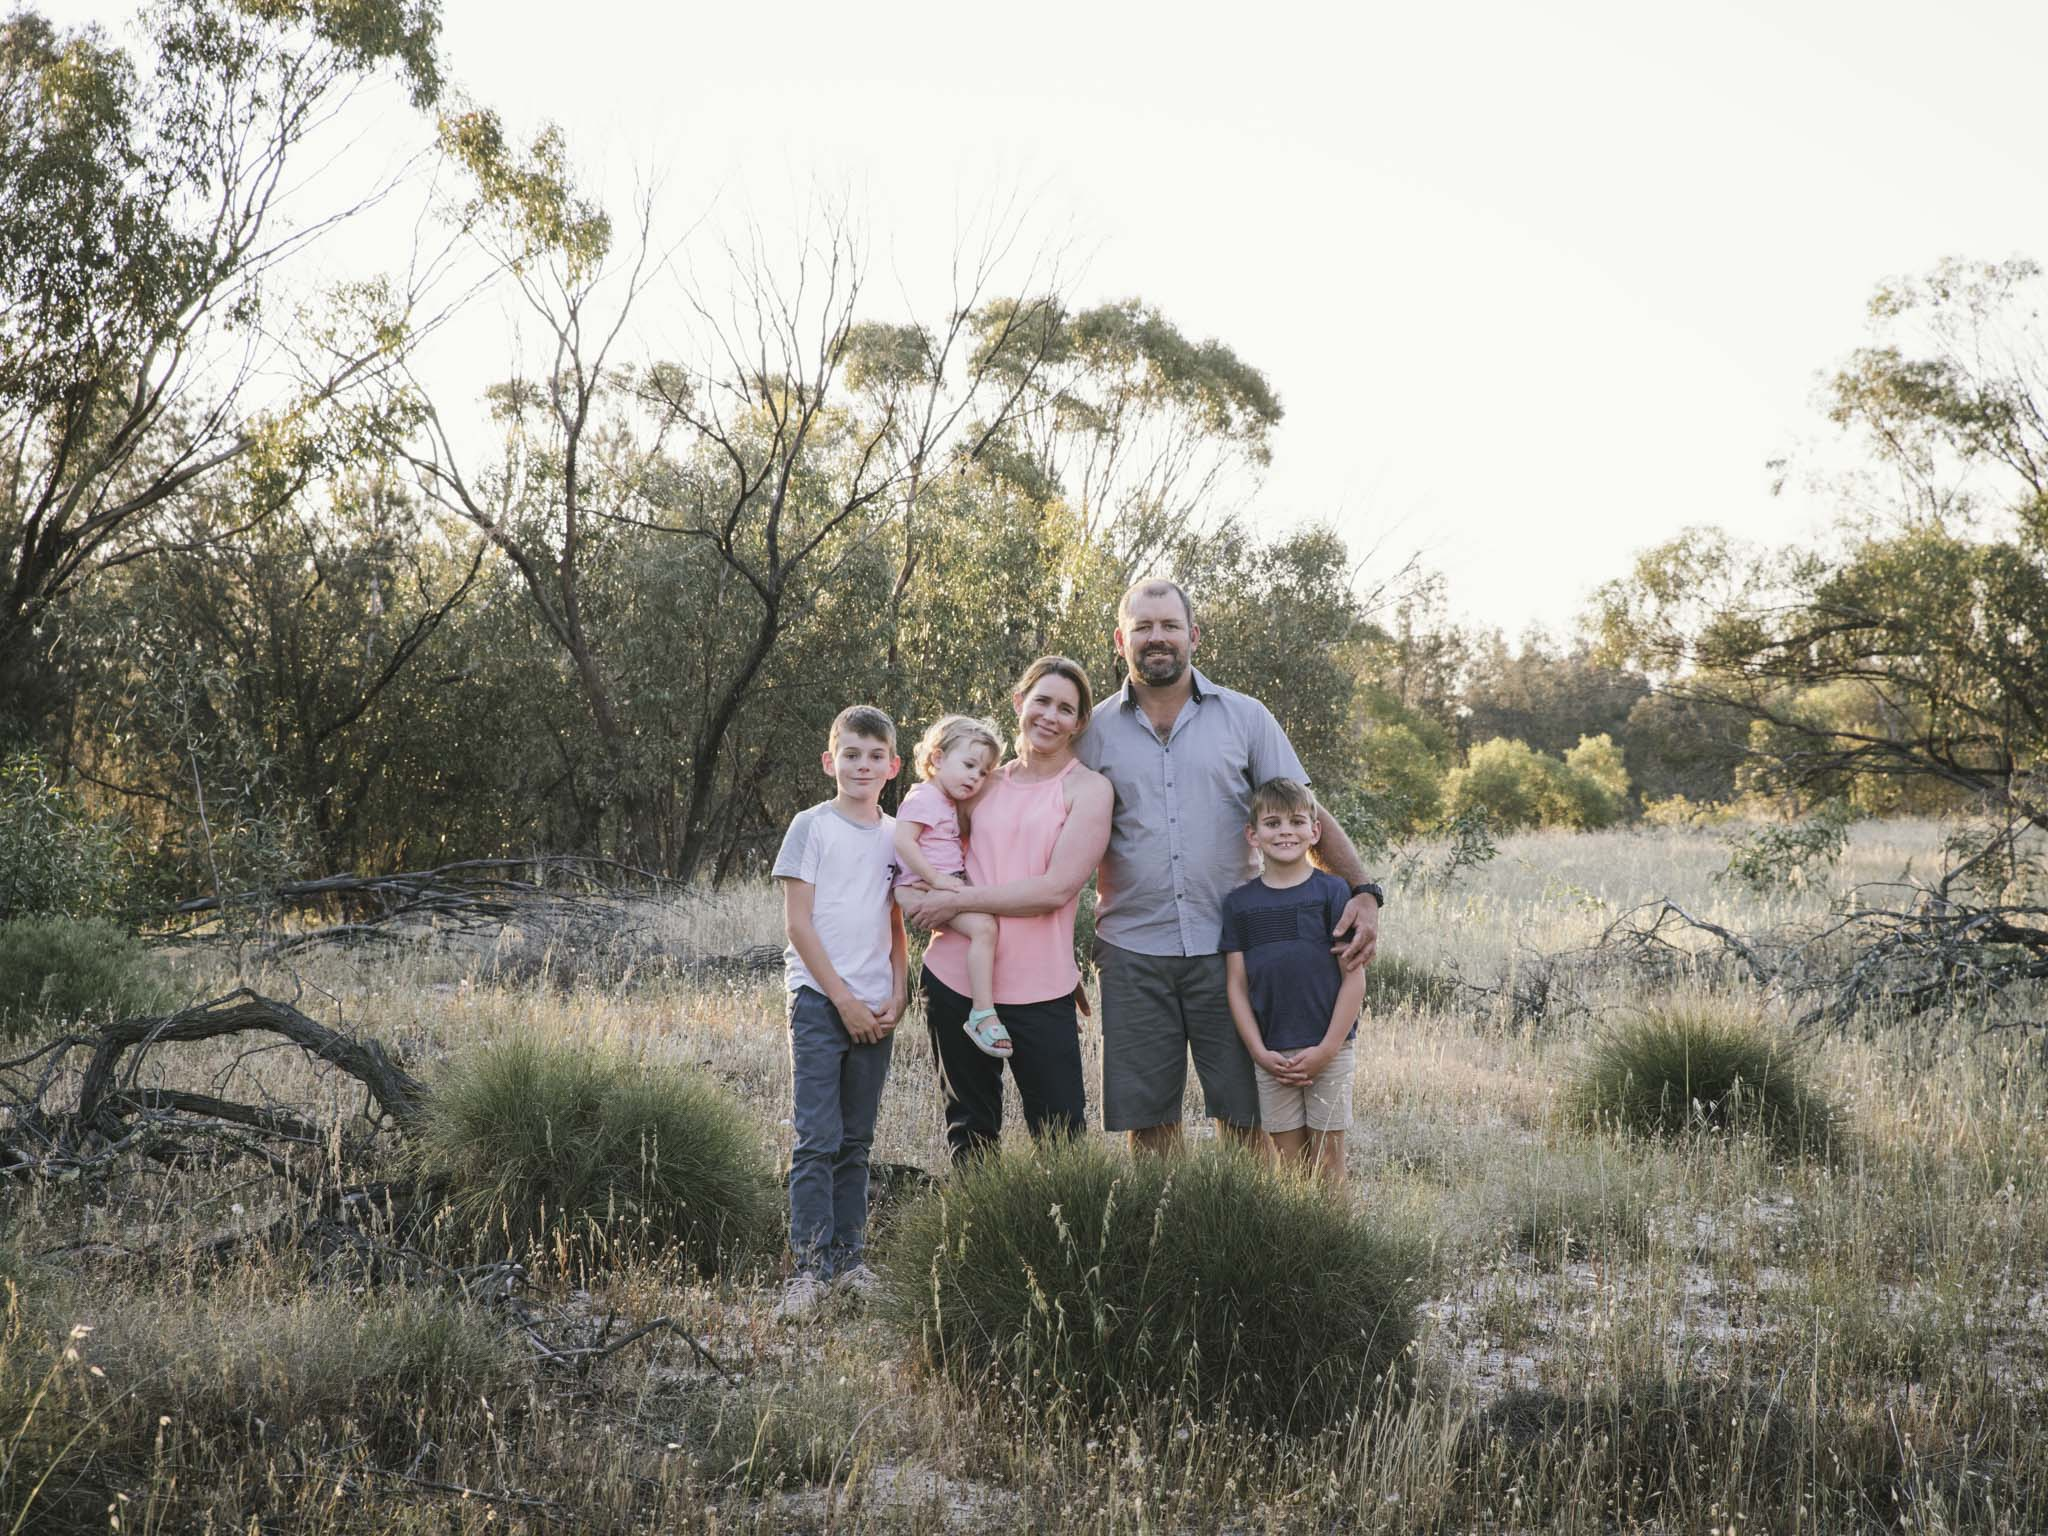 Farm family lifestyle photography session in the bush in country rural Western Australia